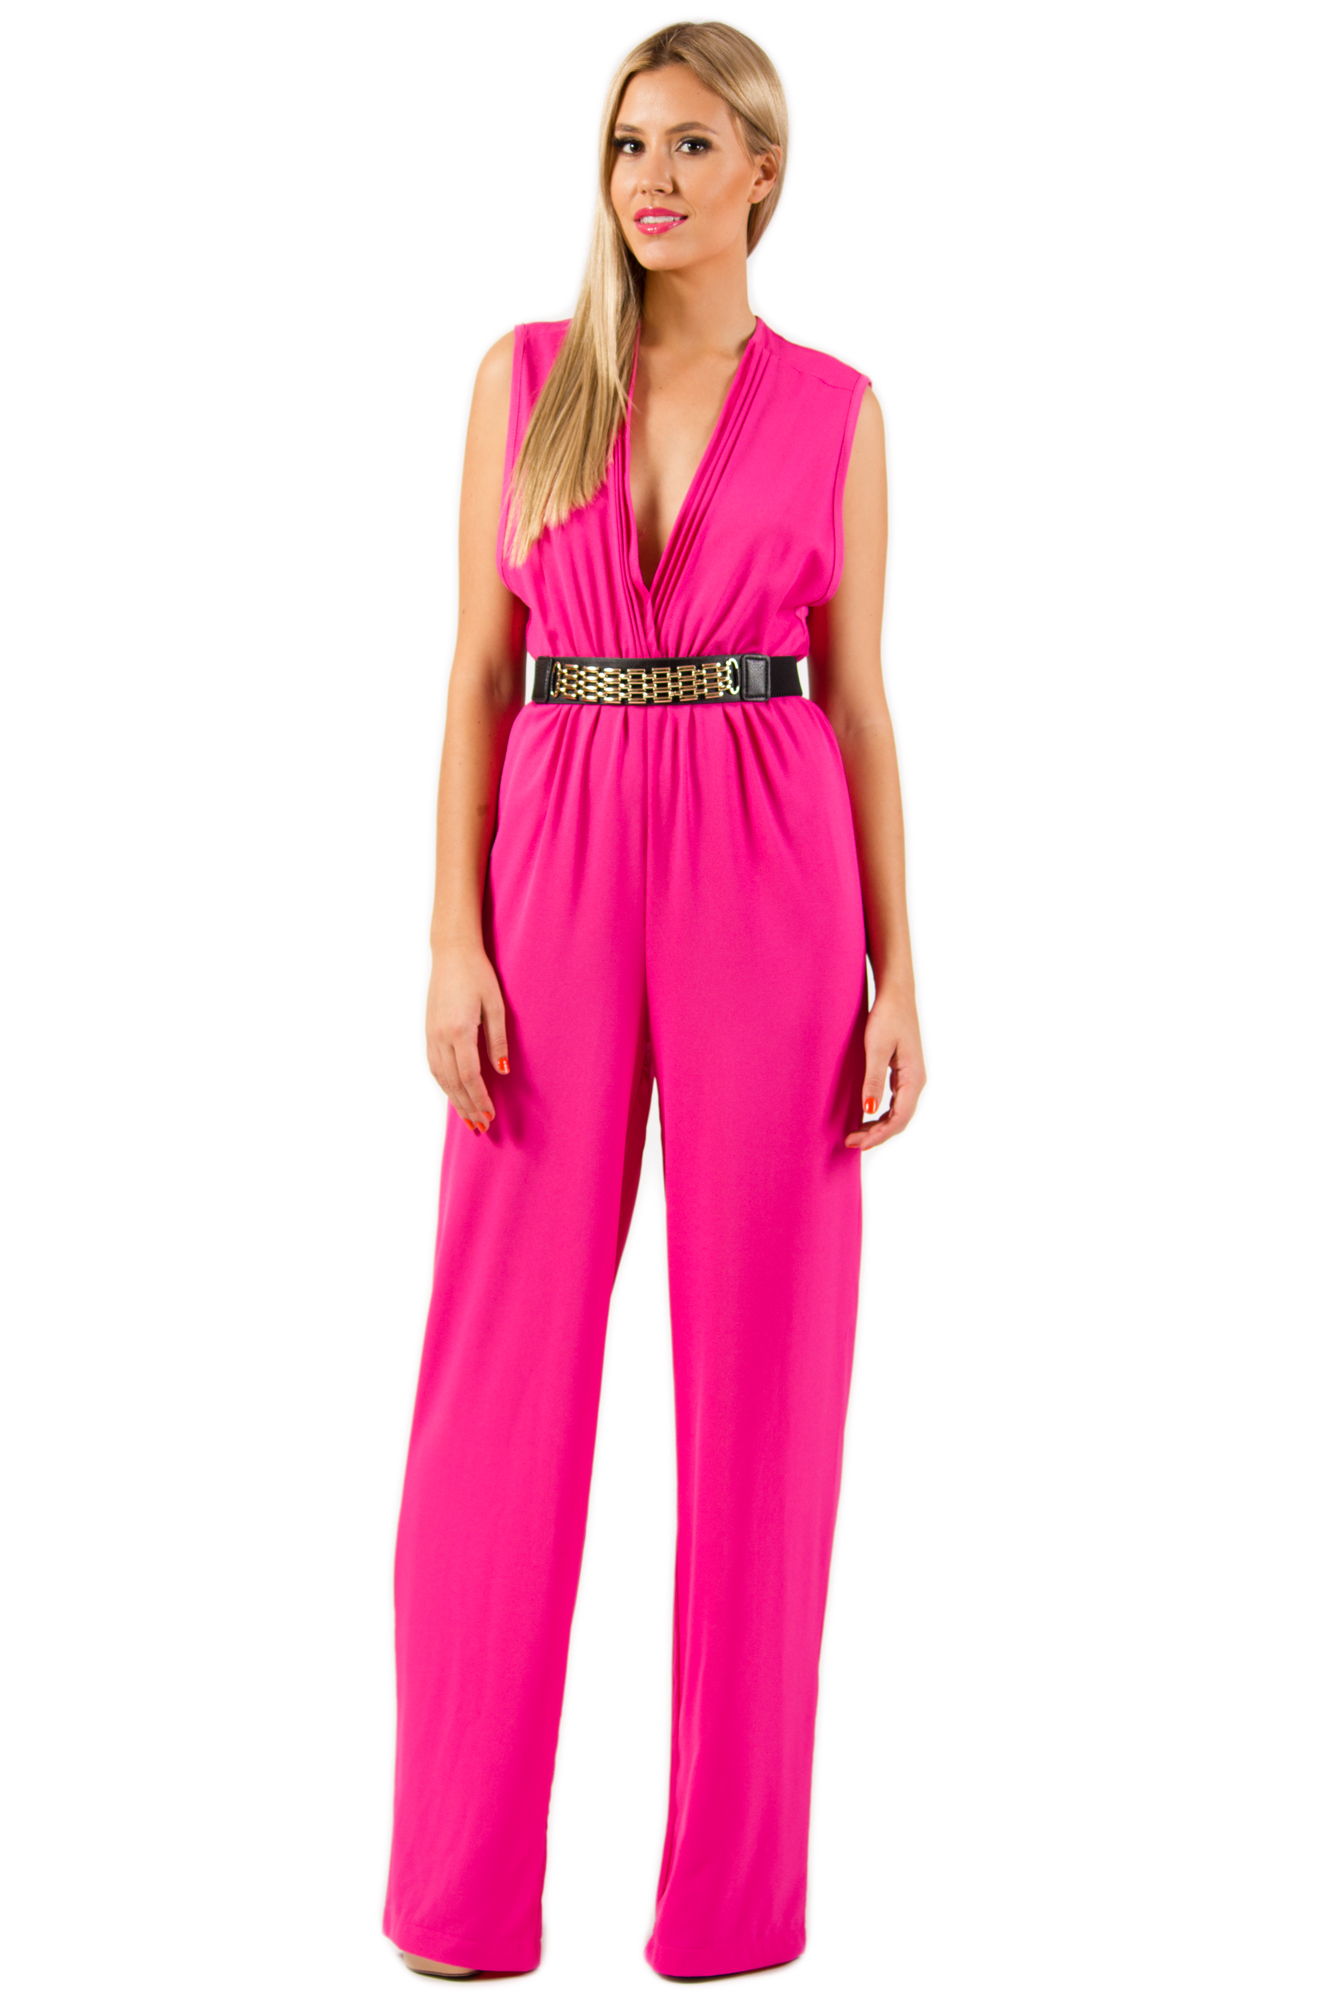 Pink Jump Suits/Rompers - Hot Pink V Neck Plunge | UsTrendy